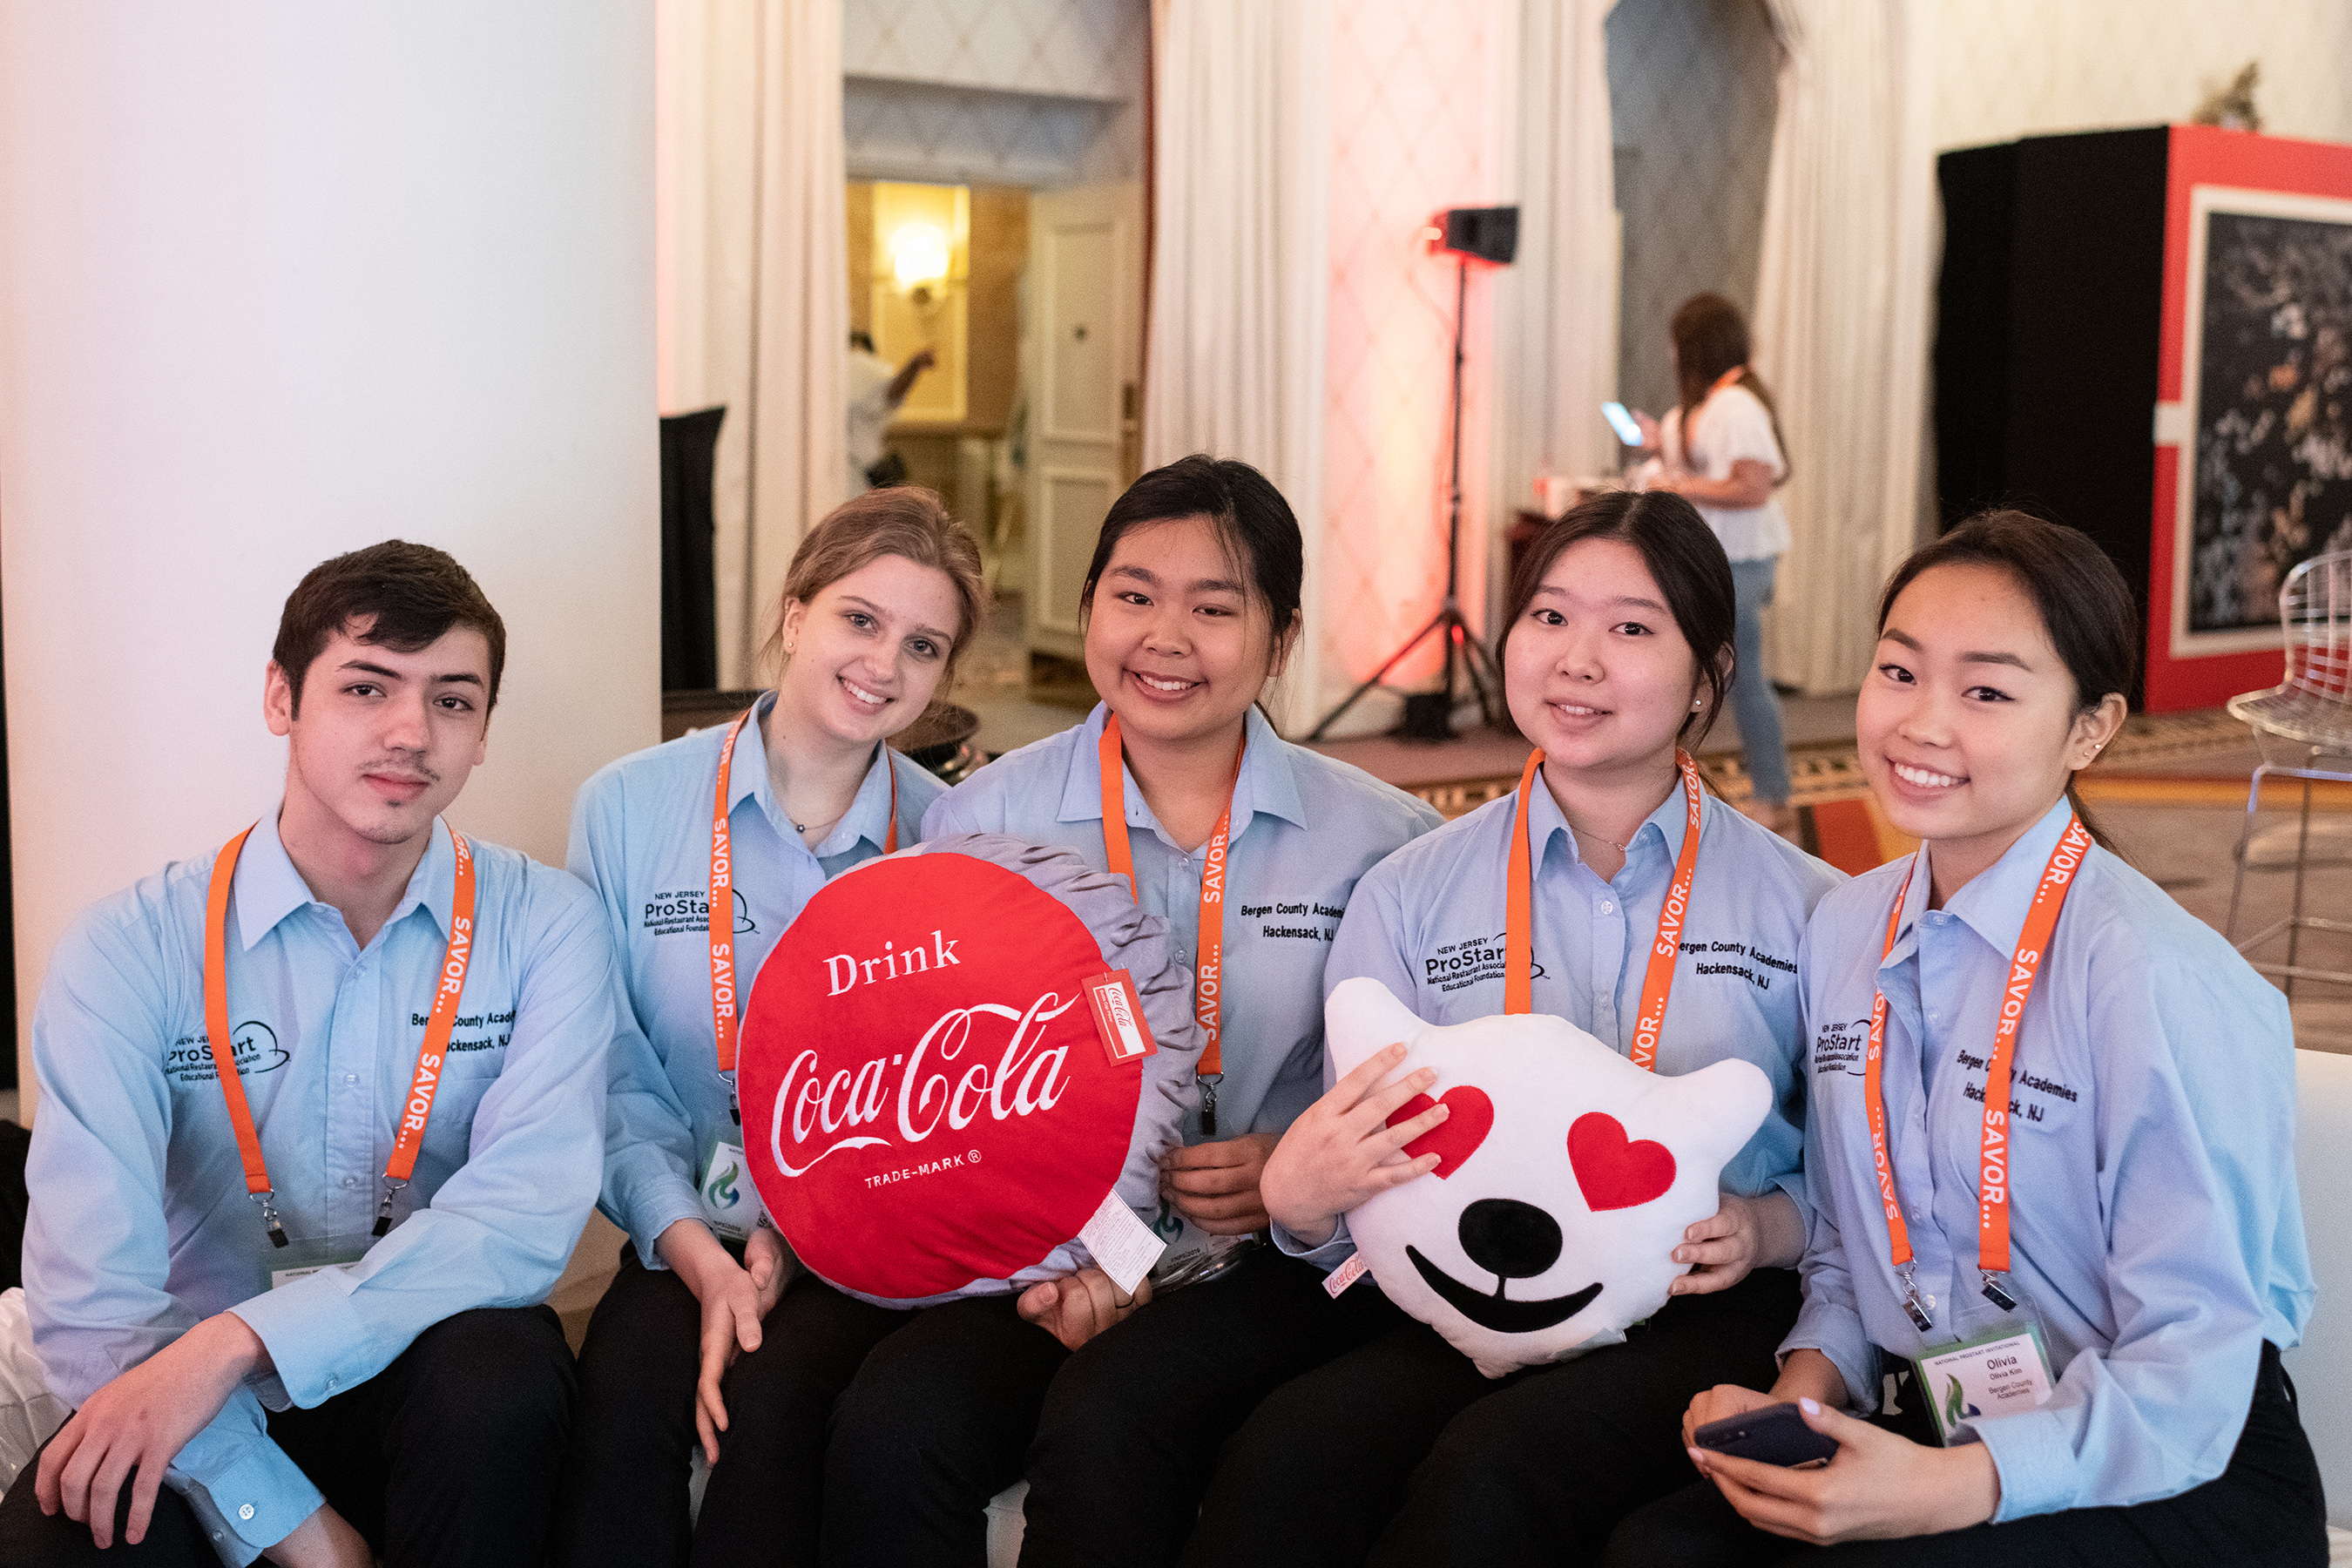 The NRAEF thanks Coca-Cola for investing in preparing the next generation of restaurant leaders. Pictured here: ProStart students from New Jersey who traveled to Washington, D.C. to compete in the 2019 National ProStart Invitational.